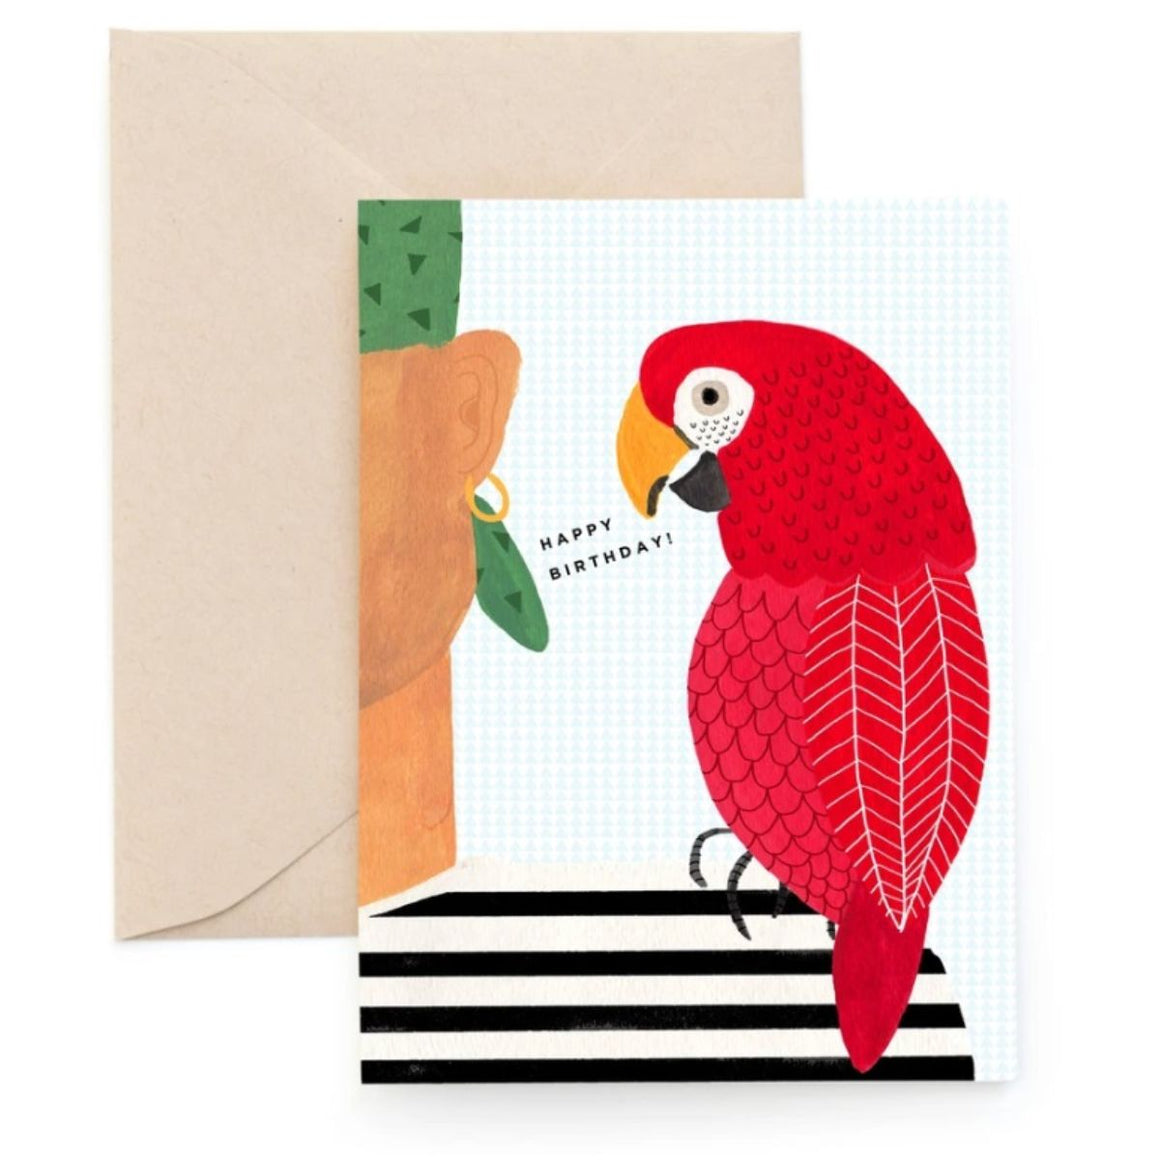 Greeting Card in a white colour background featuring a graphic illustration of a Parrot and Pirate with the words Happy Birthday!